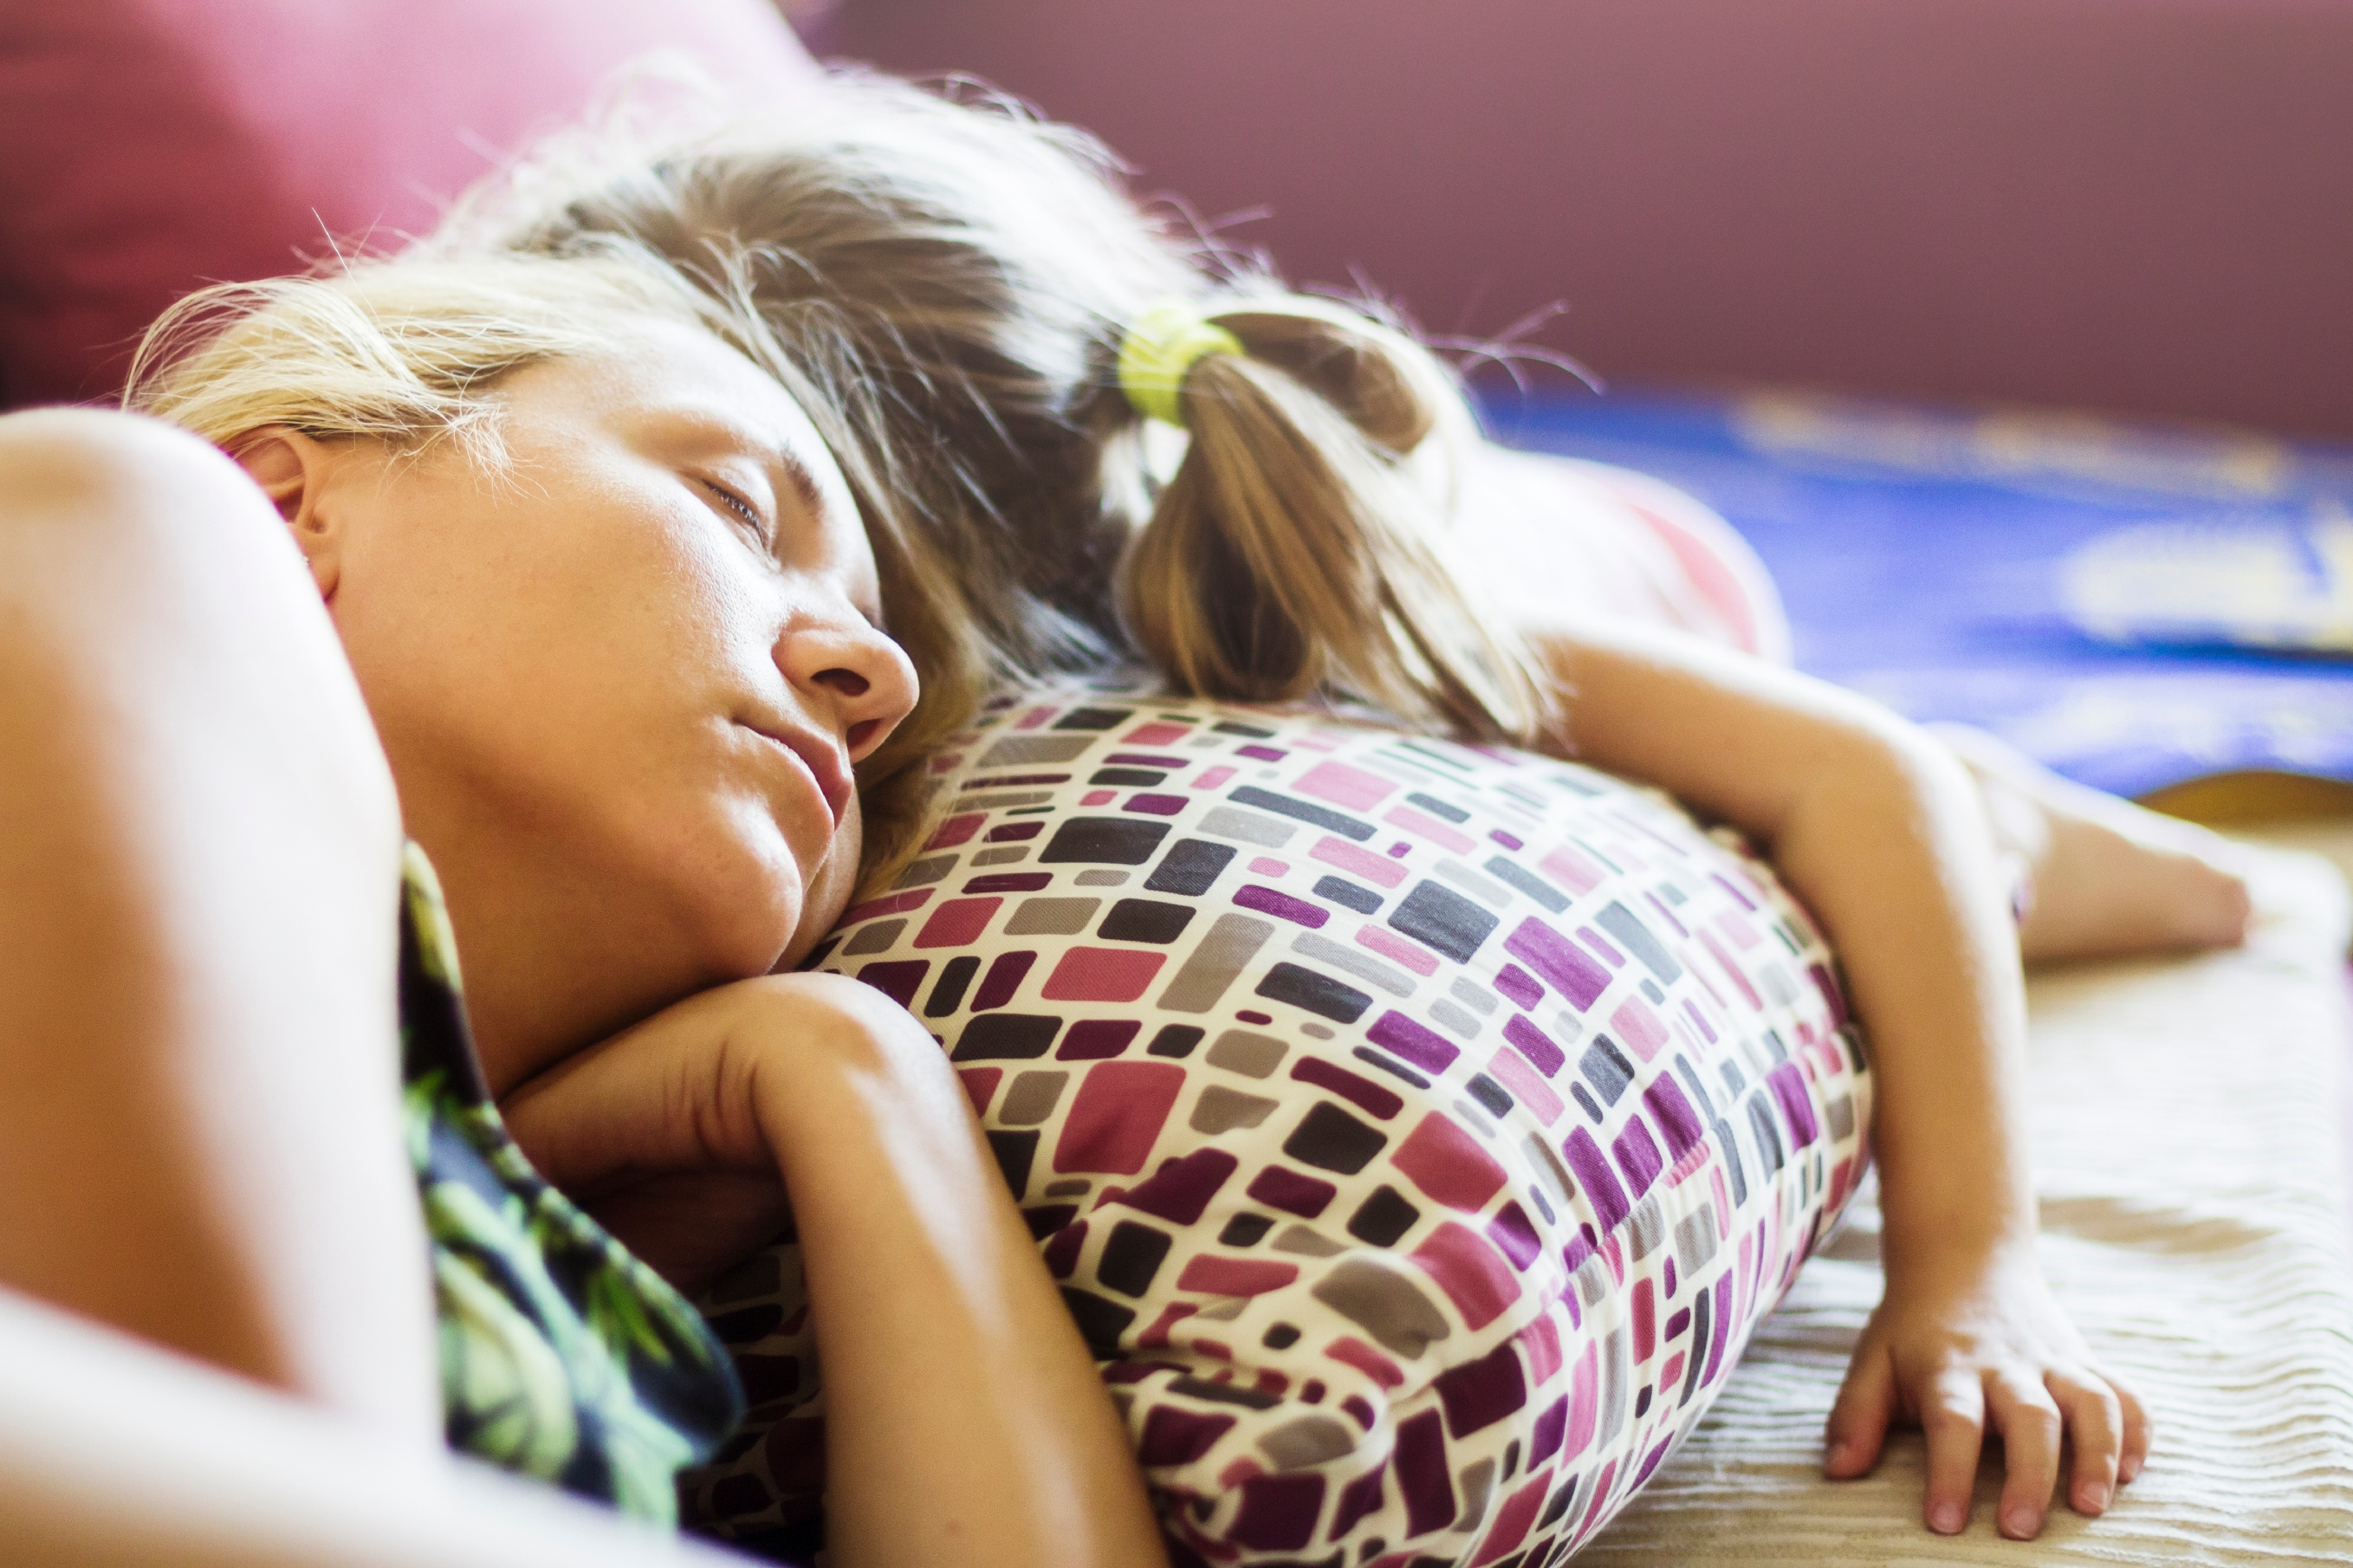 Mother-and-daughter-sleeping-on-pillow-together-000069243185_Large.jpg